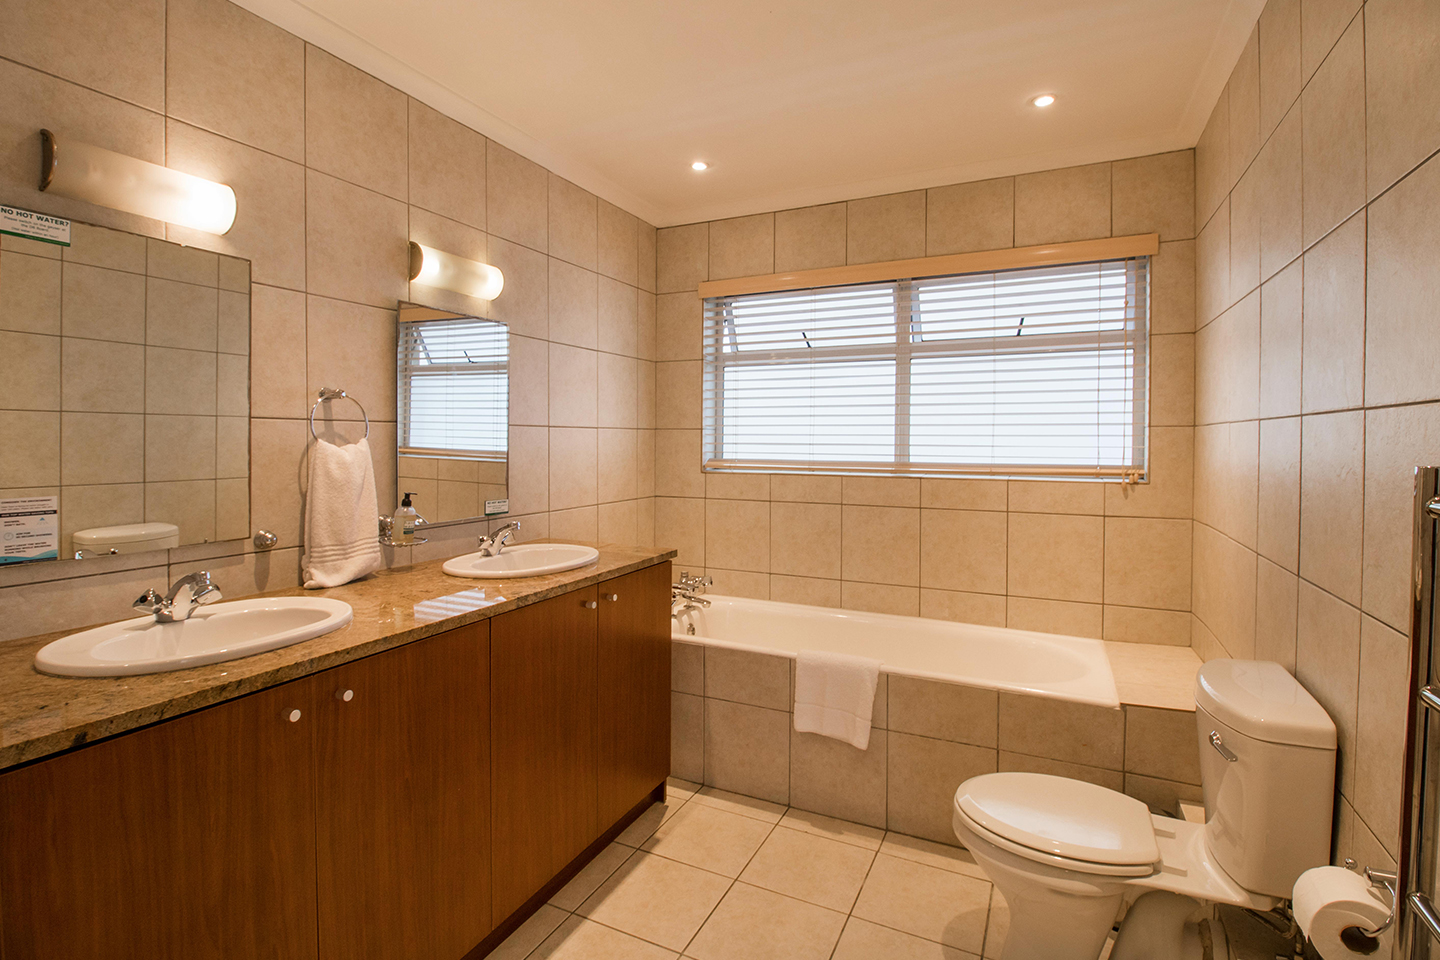 Bathroom at Mouille Point Village - Citybase Apartments